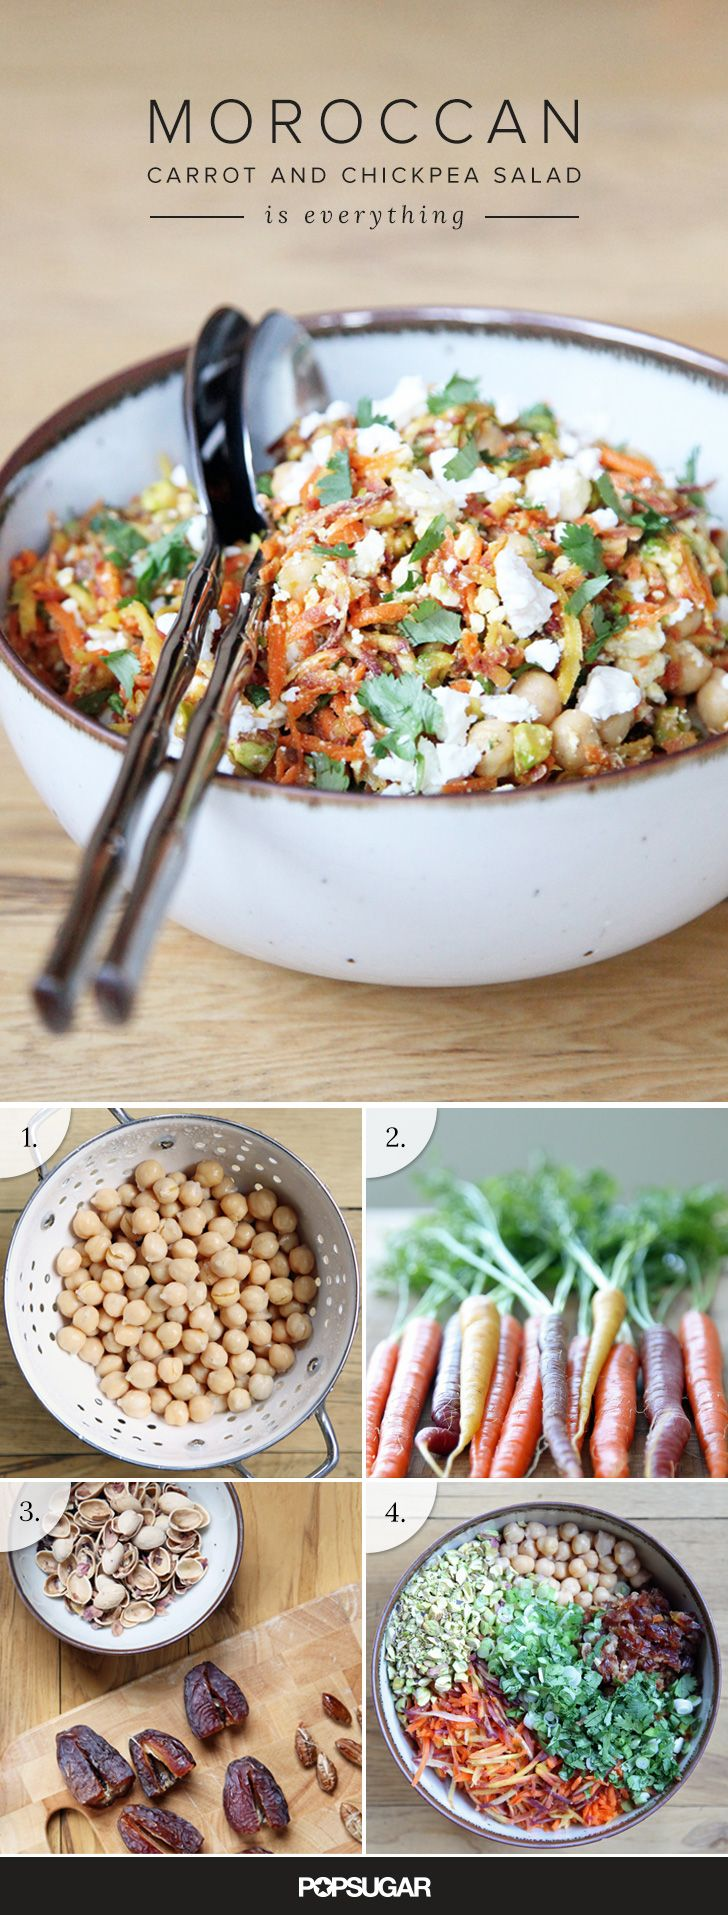 Carrot, Chickpea, and Feta Salad Recipe that vegans and vegetarians can enjoy, gluten-free.